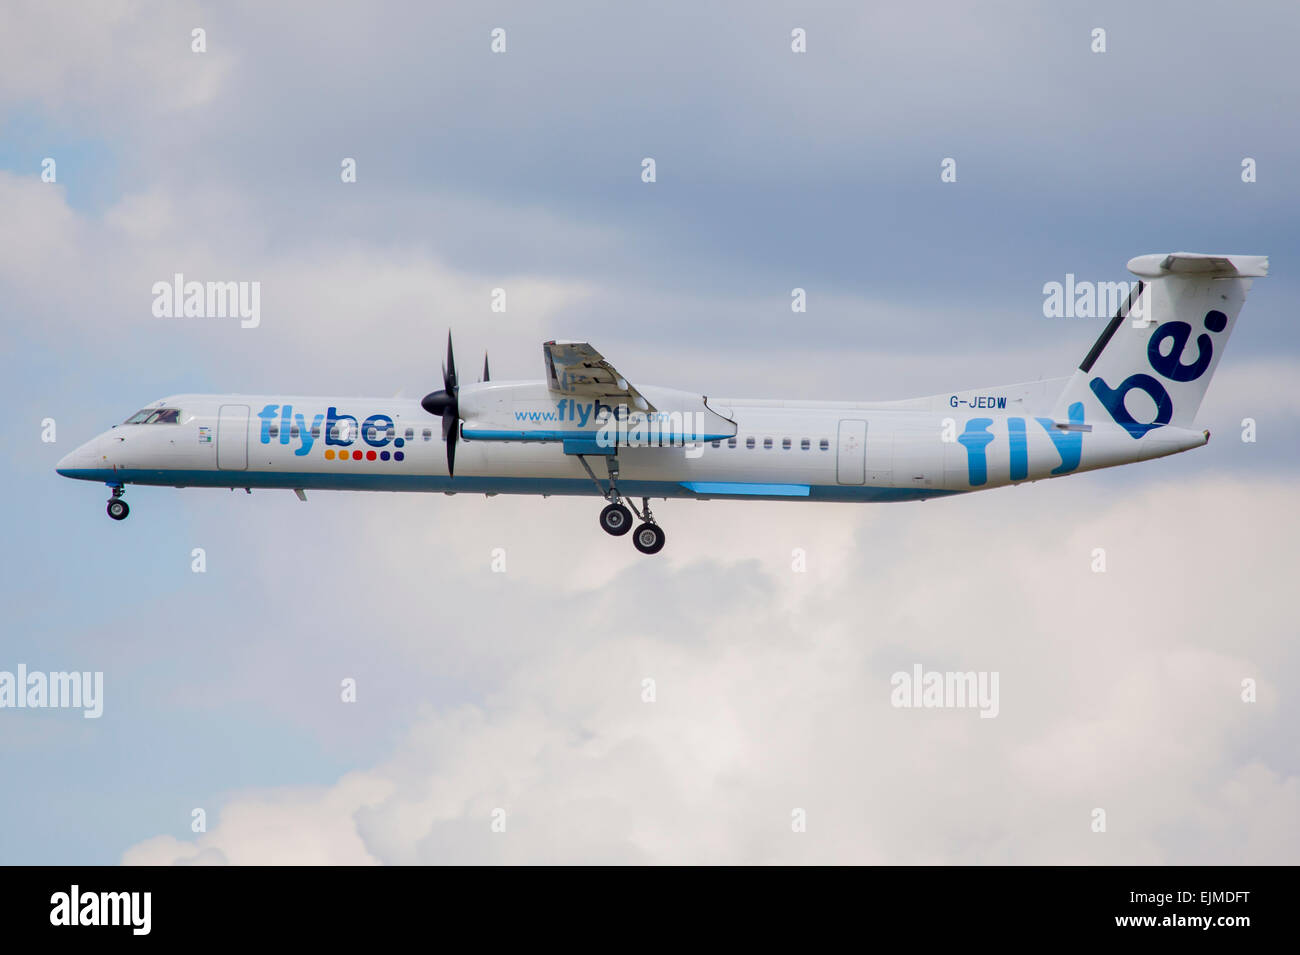 FlyBe Dash8 Aircraft - Stock Image